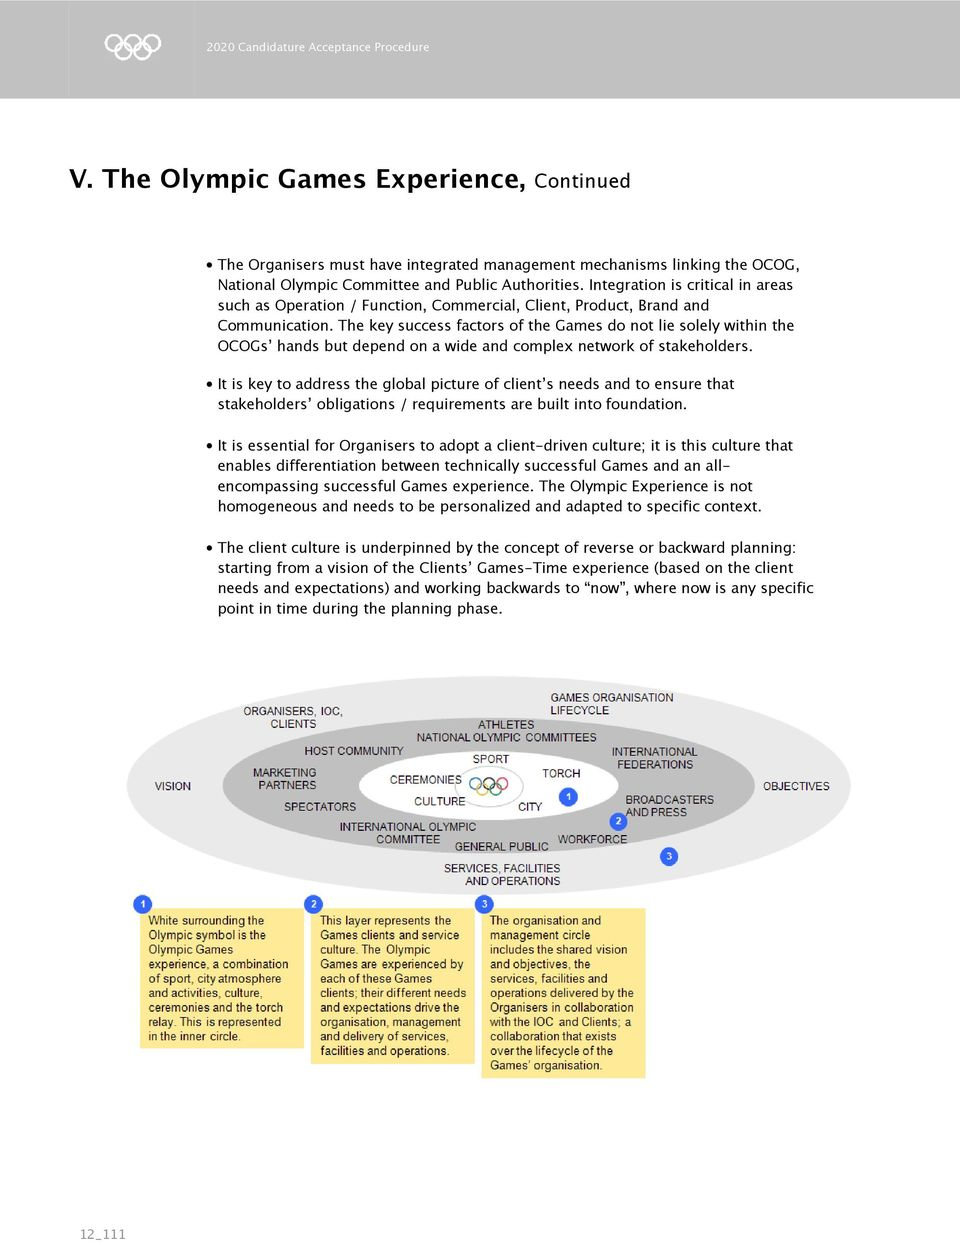 The key success factors of the Games do not lie solely within the OCOGs hands but depend on a wide and complex network of stakeholders.